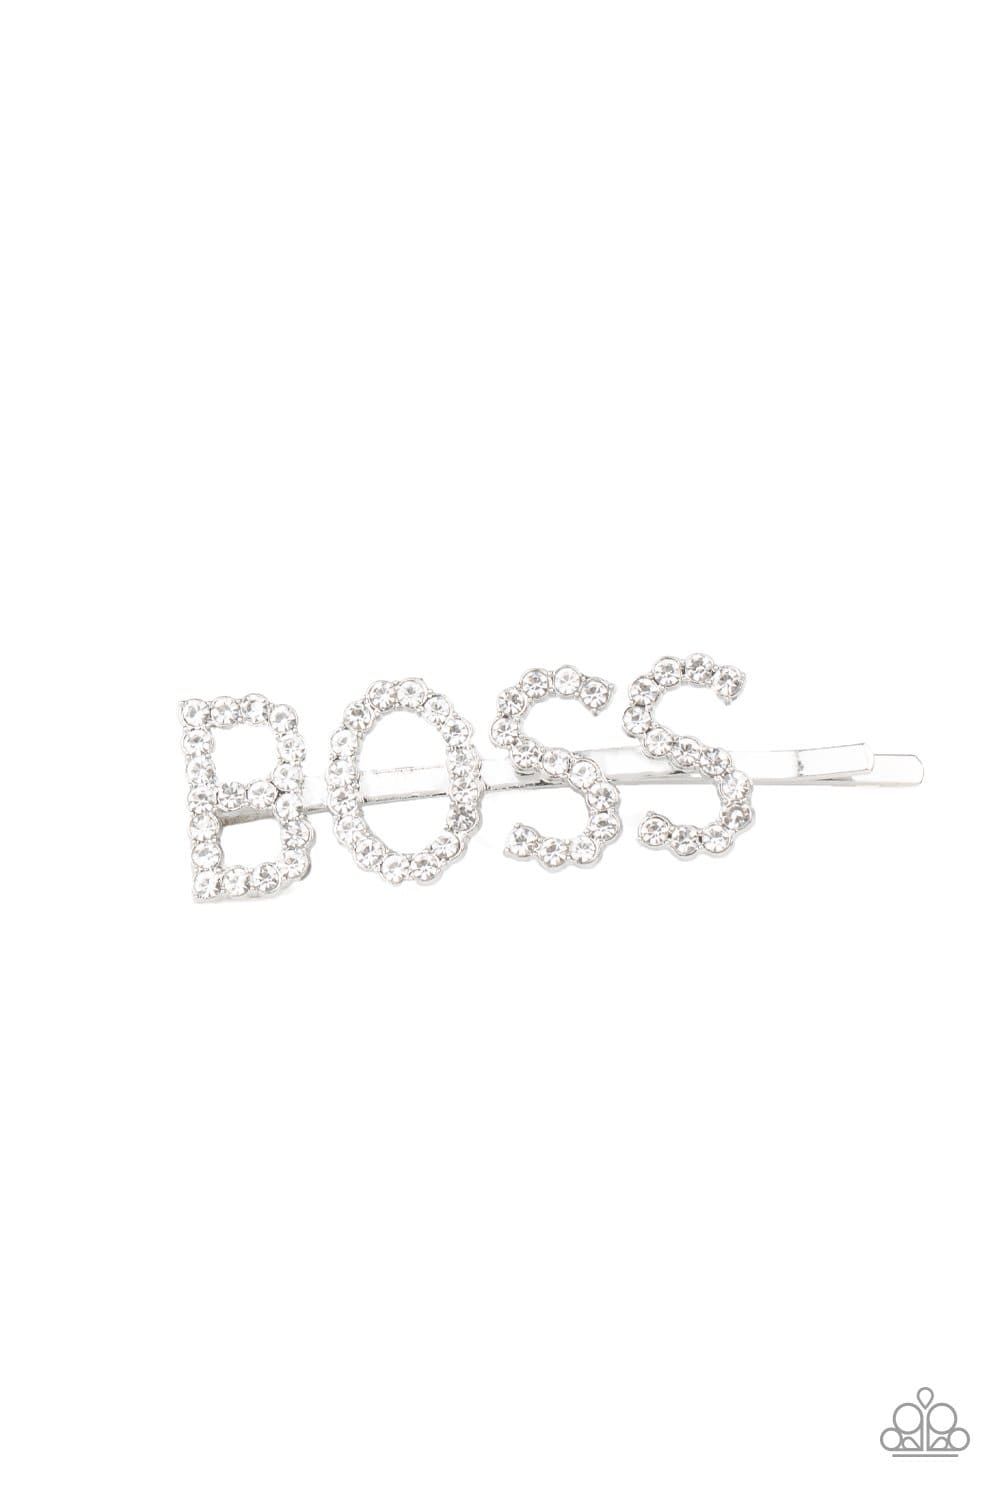 Paparazzi: Yas Boss! - White Bobby Pin - Jewels N' Thingz Boutique